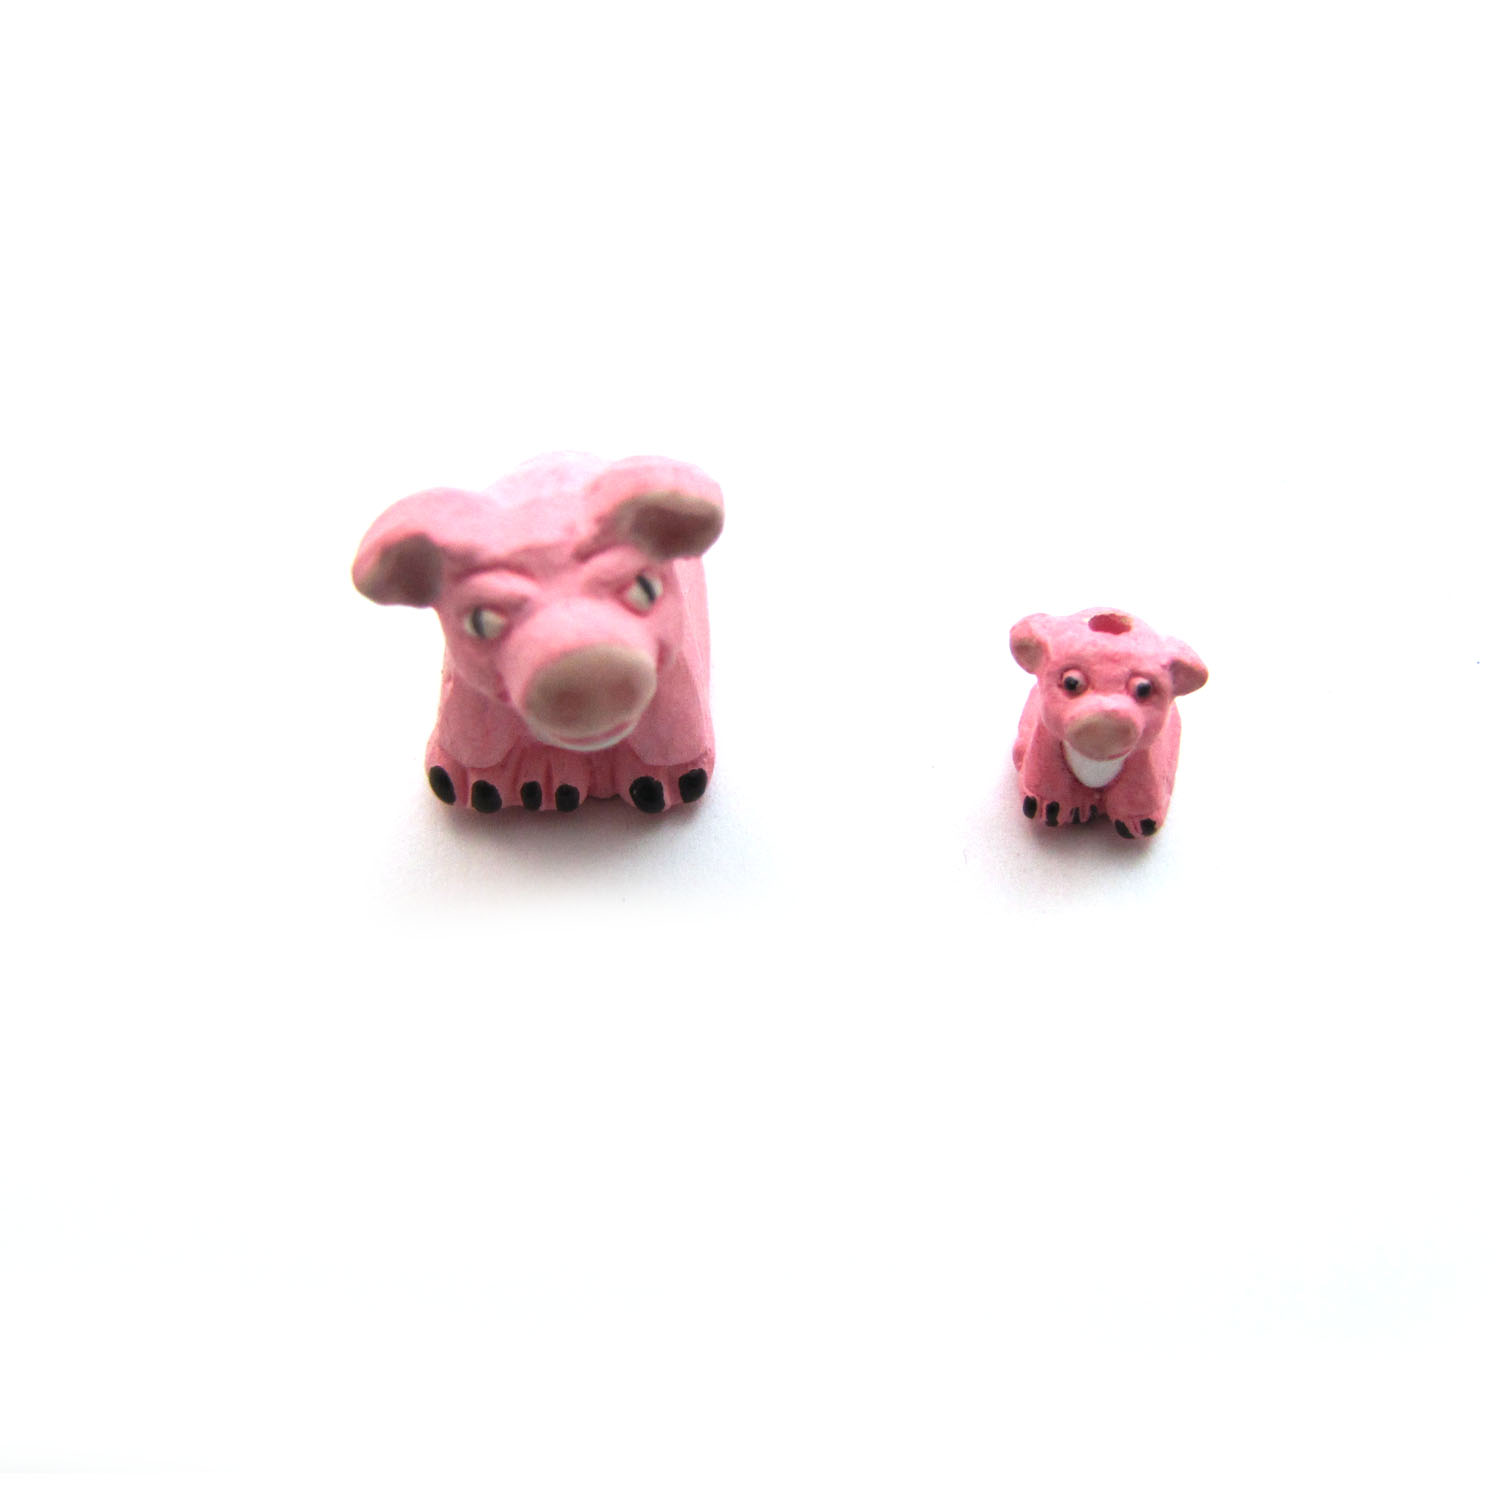 Ceramic Animals small and large - Pig